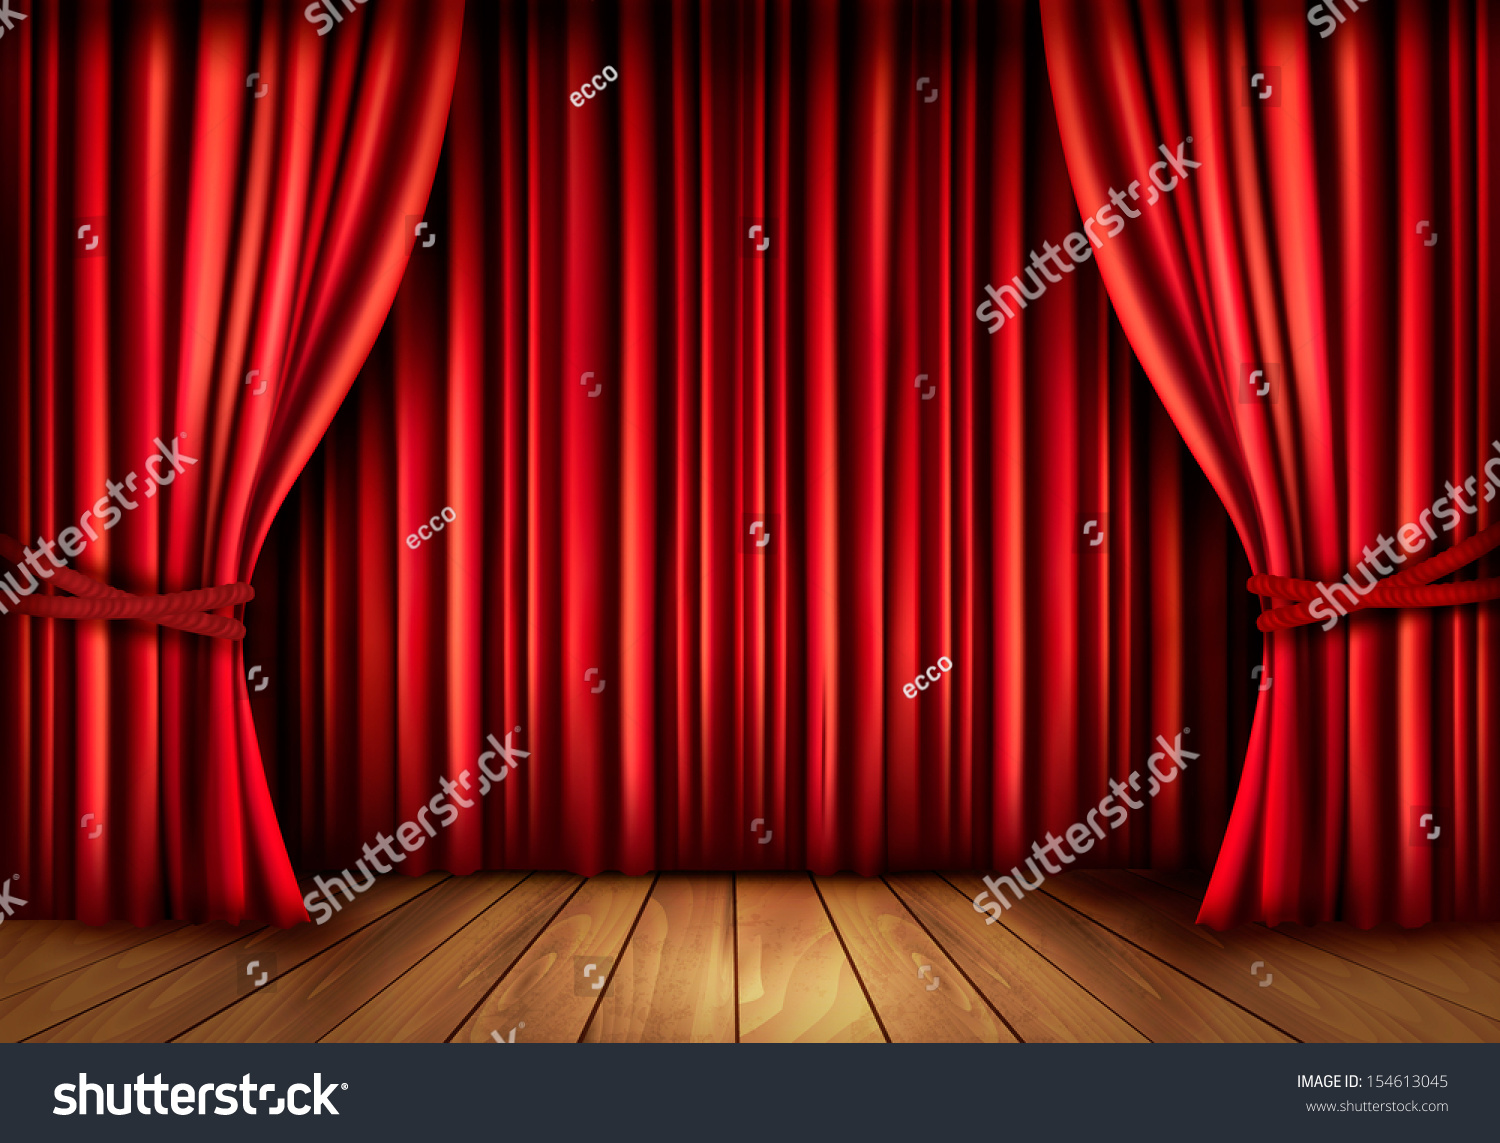 Red velvet curtain wallpaper -  Background With Red Velvet Curtain And A Wooden Floor Vector Illustration Download